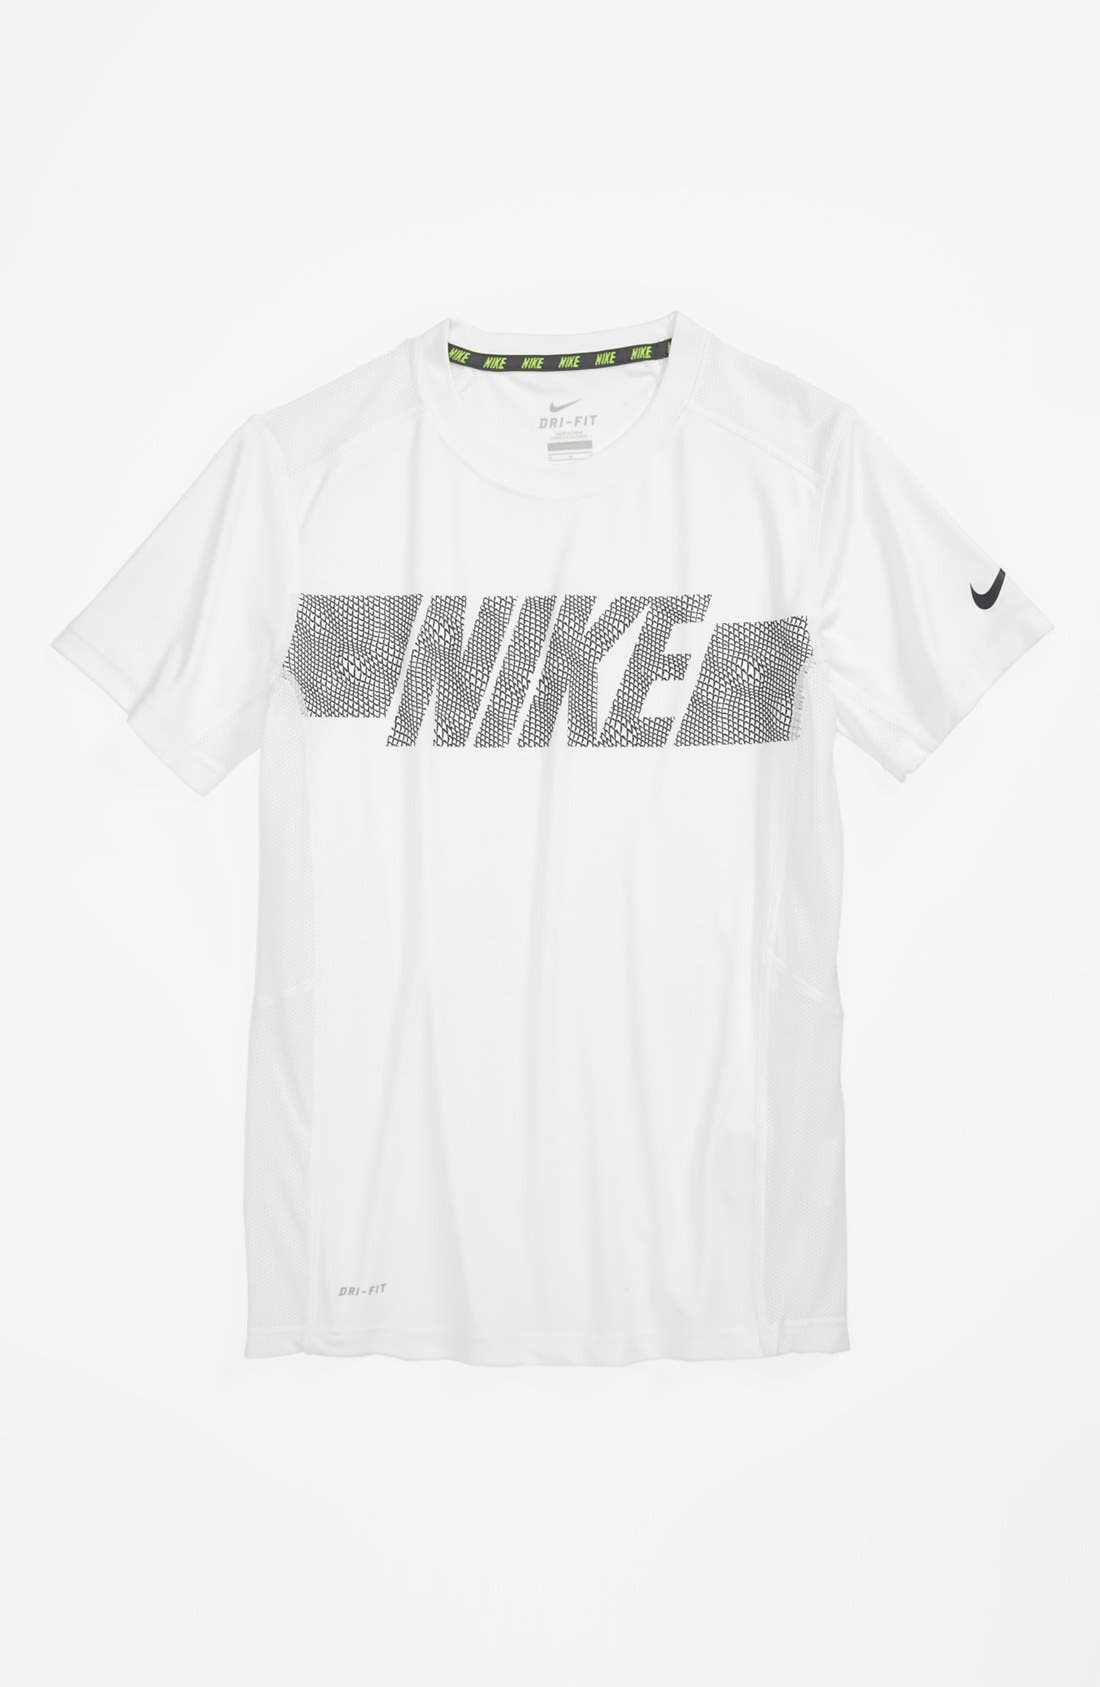 Alternate Image 1 Selected - Nike 'Speed Fly Dimension GFX' T-Shirt (Big Boys)